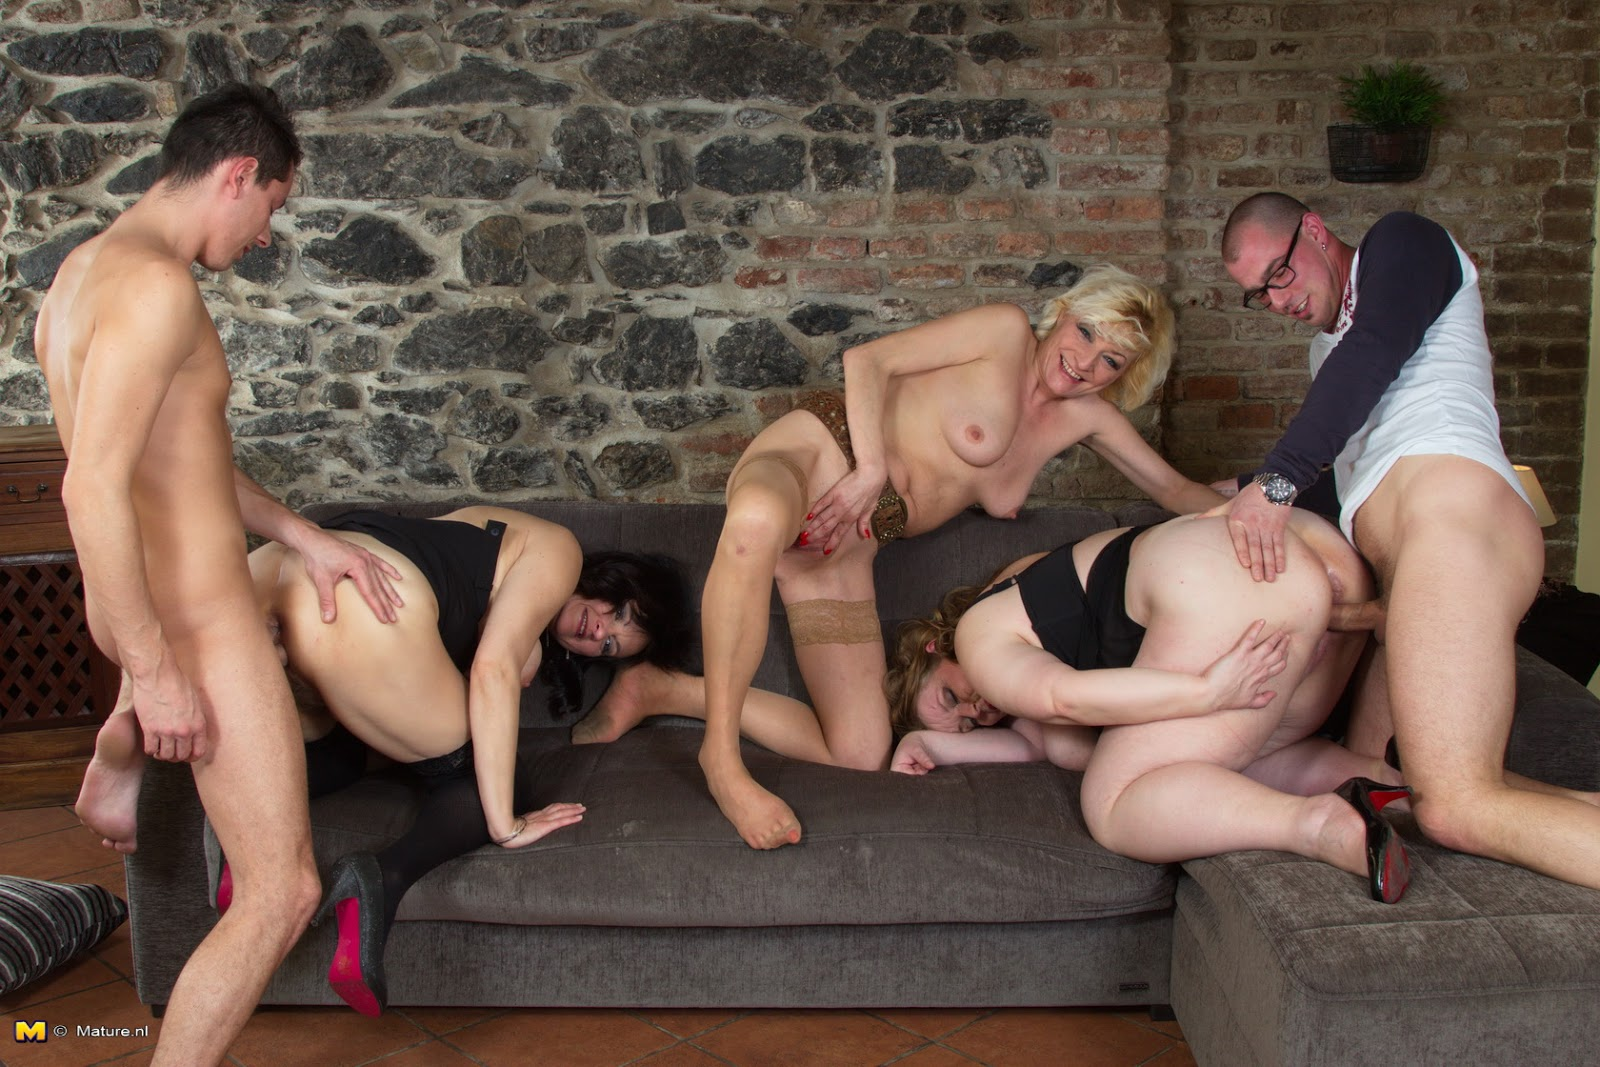 home video of woman having group sex jpg 422x640